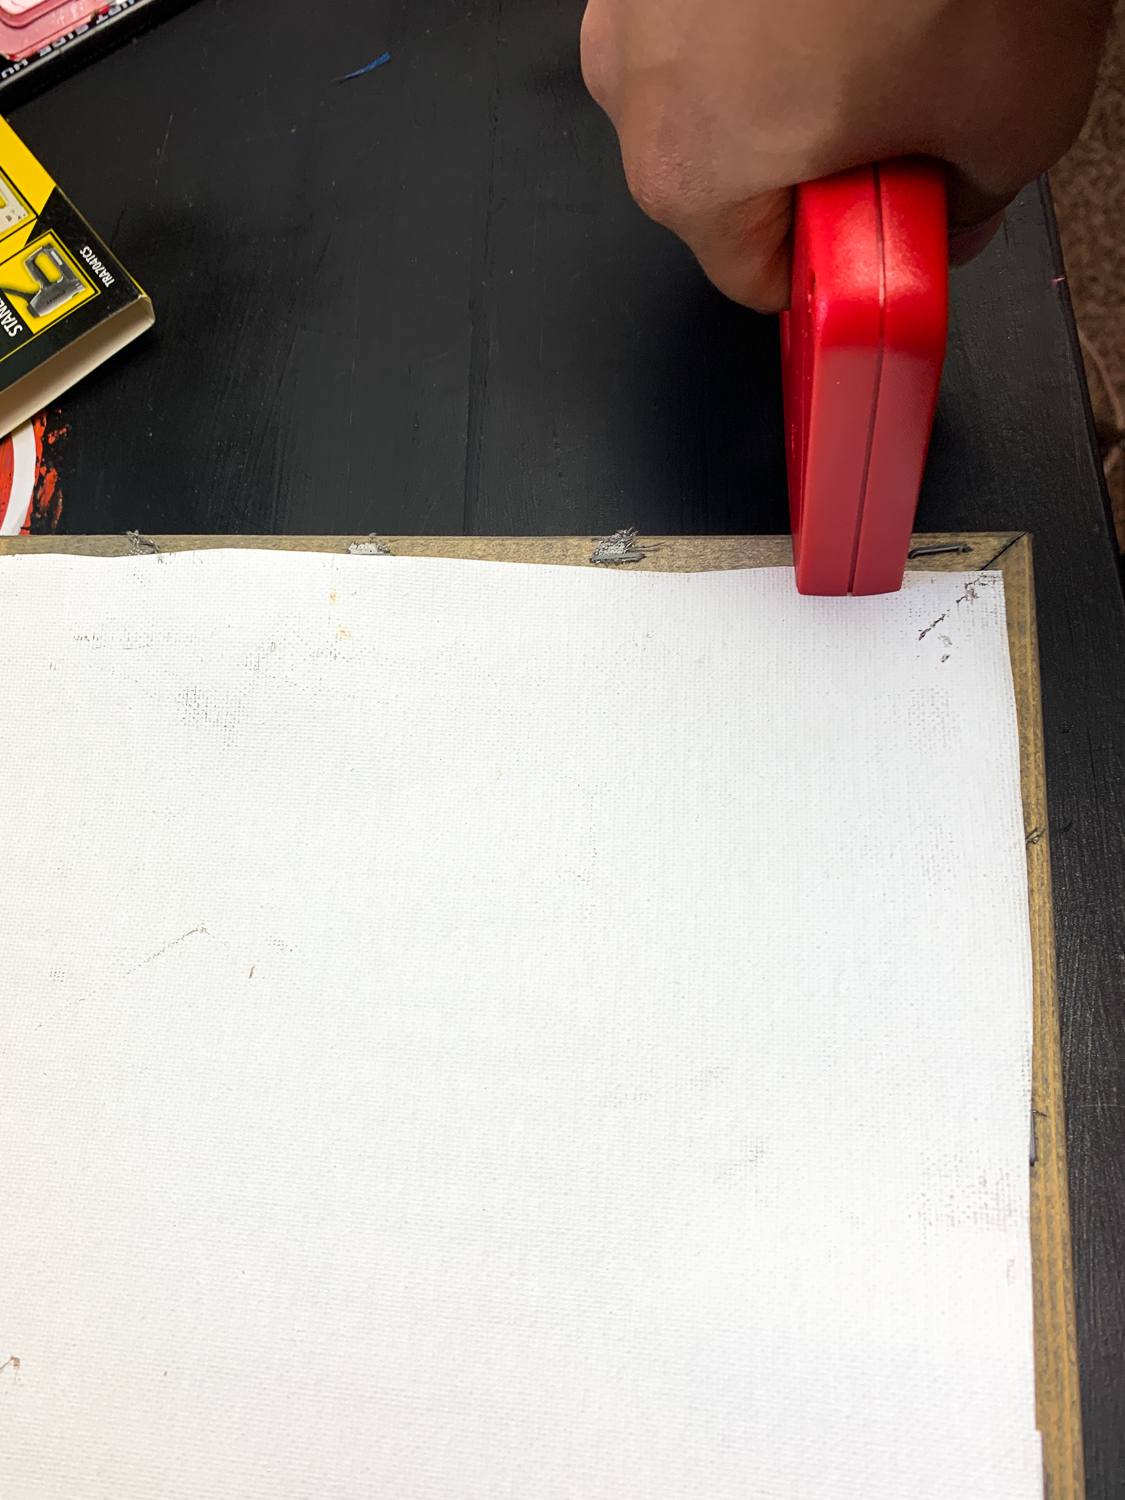 red staple gun, stapling the back of a reverse canvas